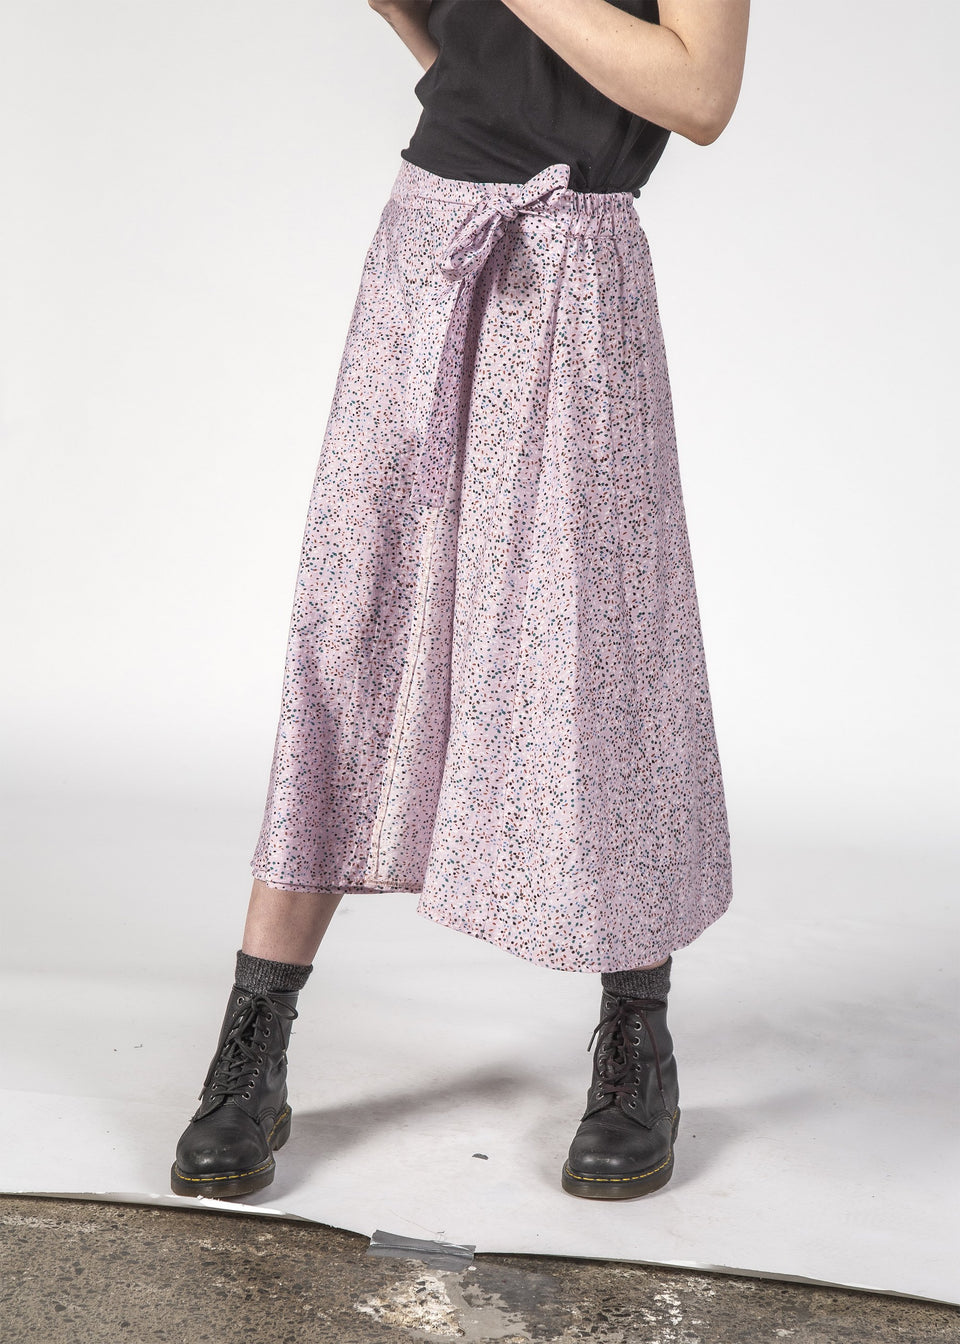 Thing Thing Freedom Skirt Lilac Speckle - Stencil